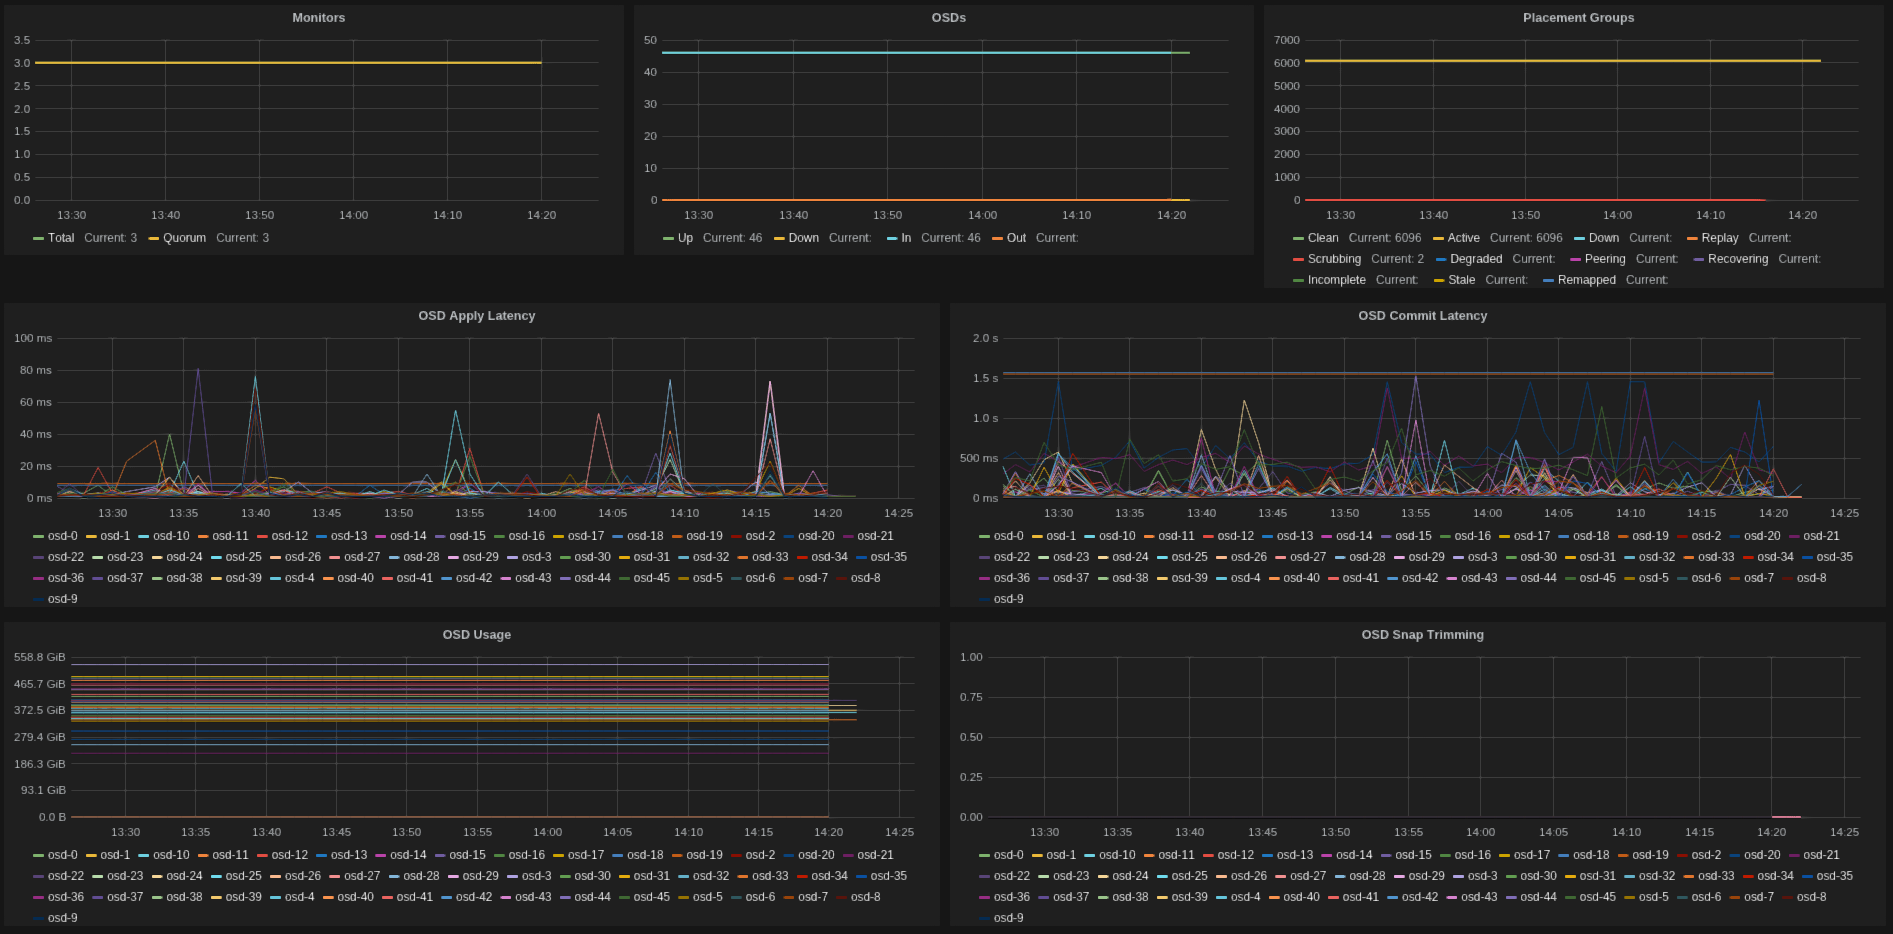 GitHub - rochaporto/collectd-ceph: collectd plugins and dashboards